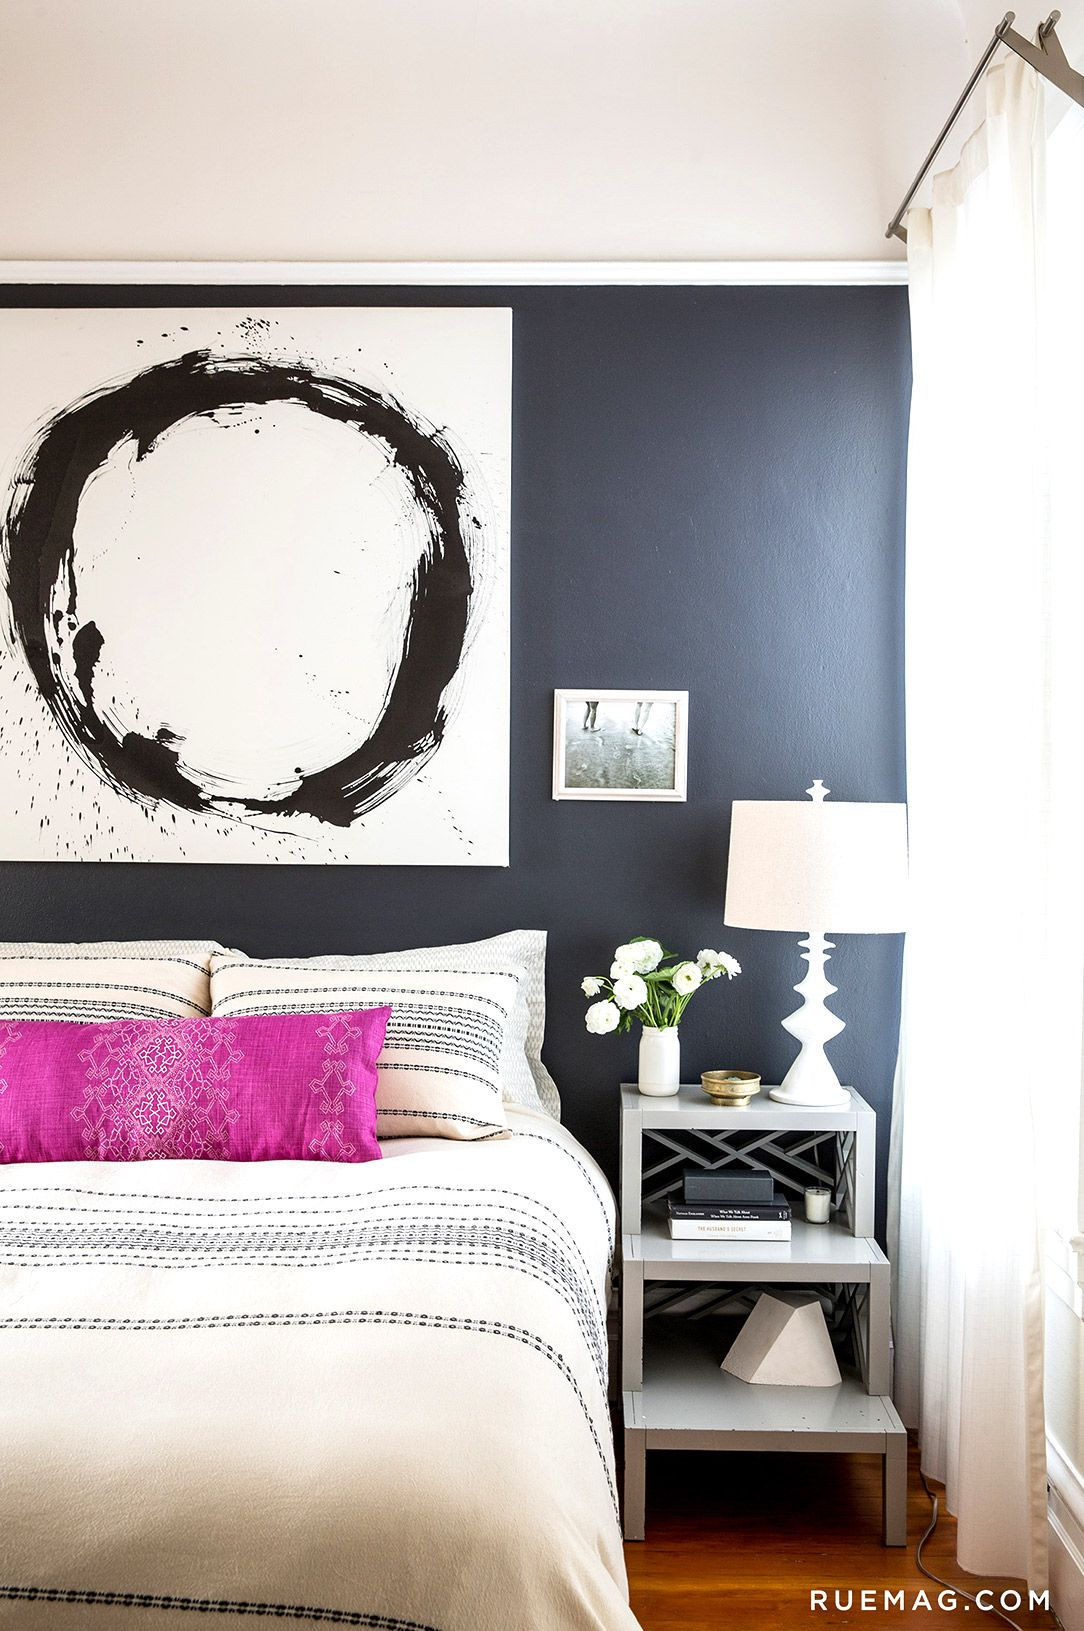 The most inspiring decorating ideas for rentals purple pillows